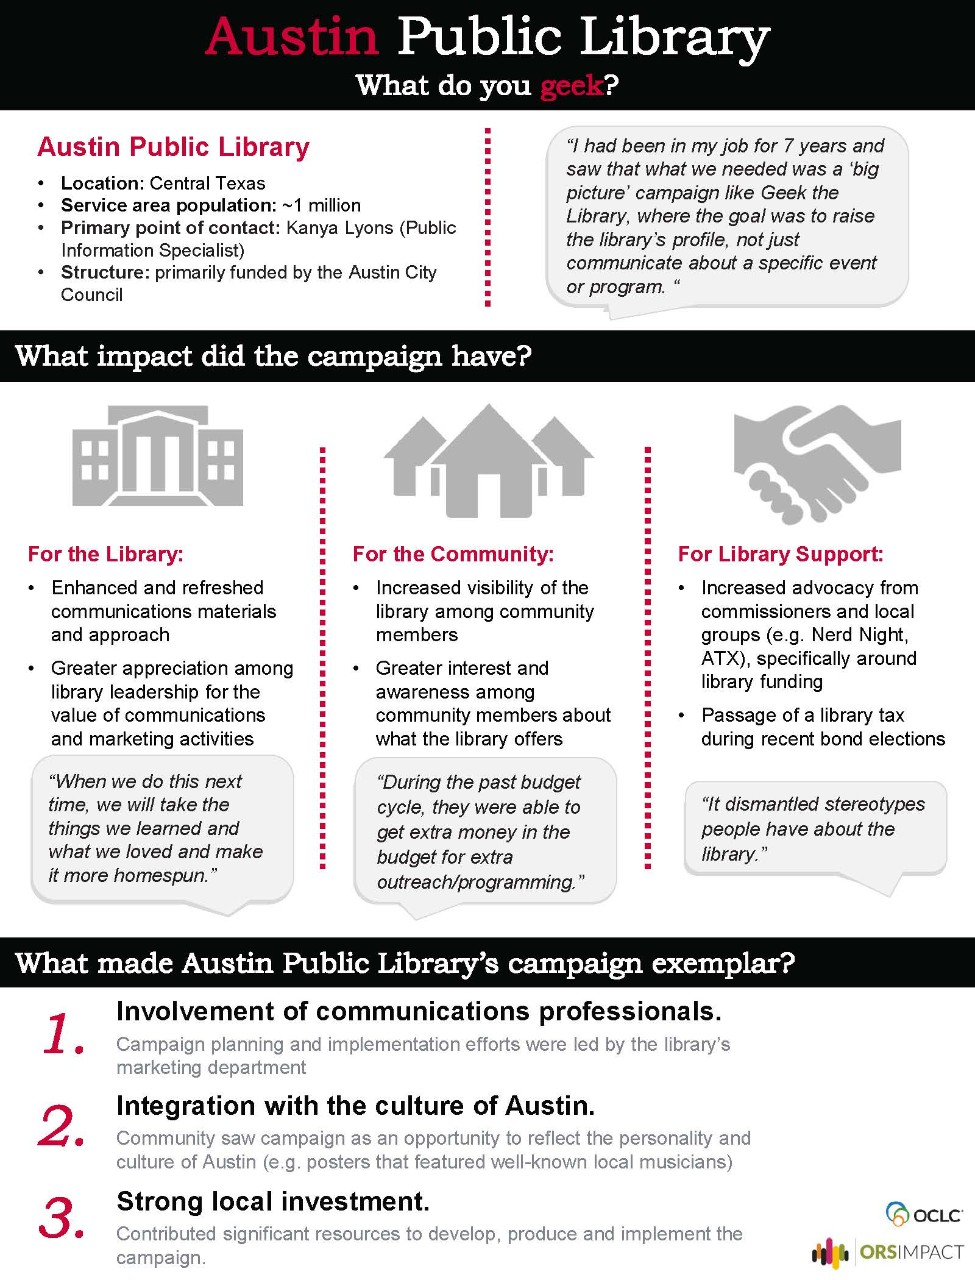 Summary of Austin Public Library case study